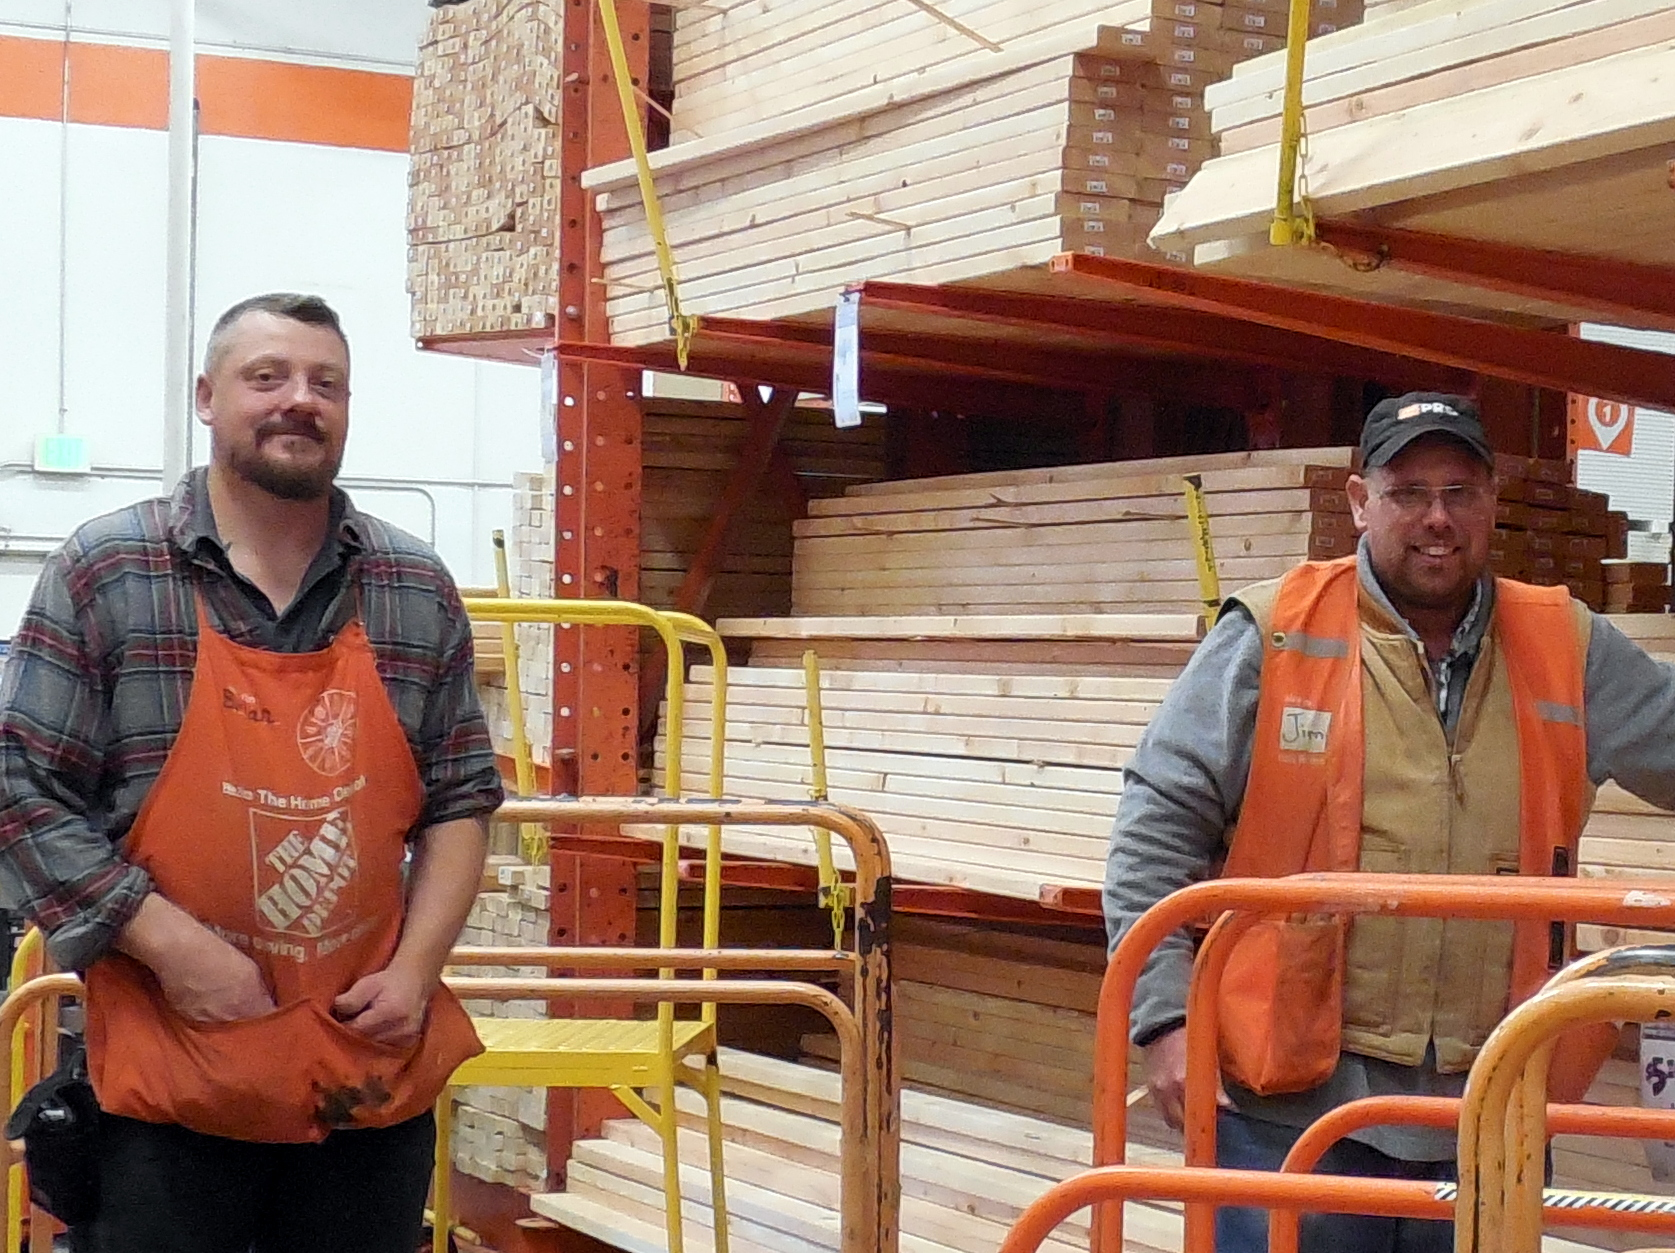 39 Home Depot-Jimmy with Co-worker.jpg